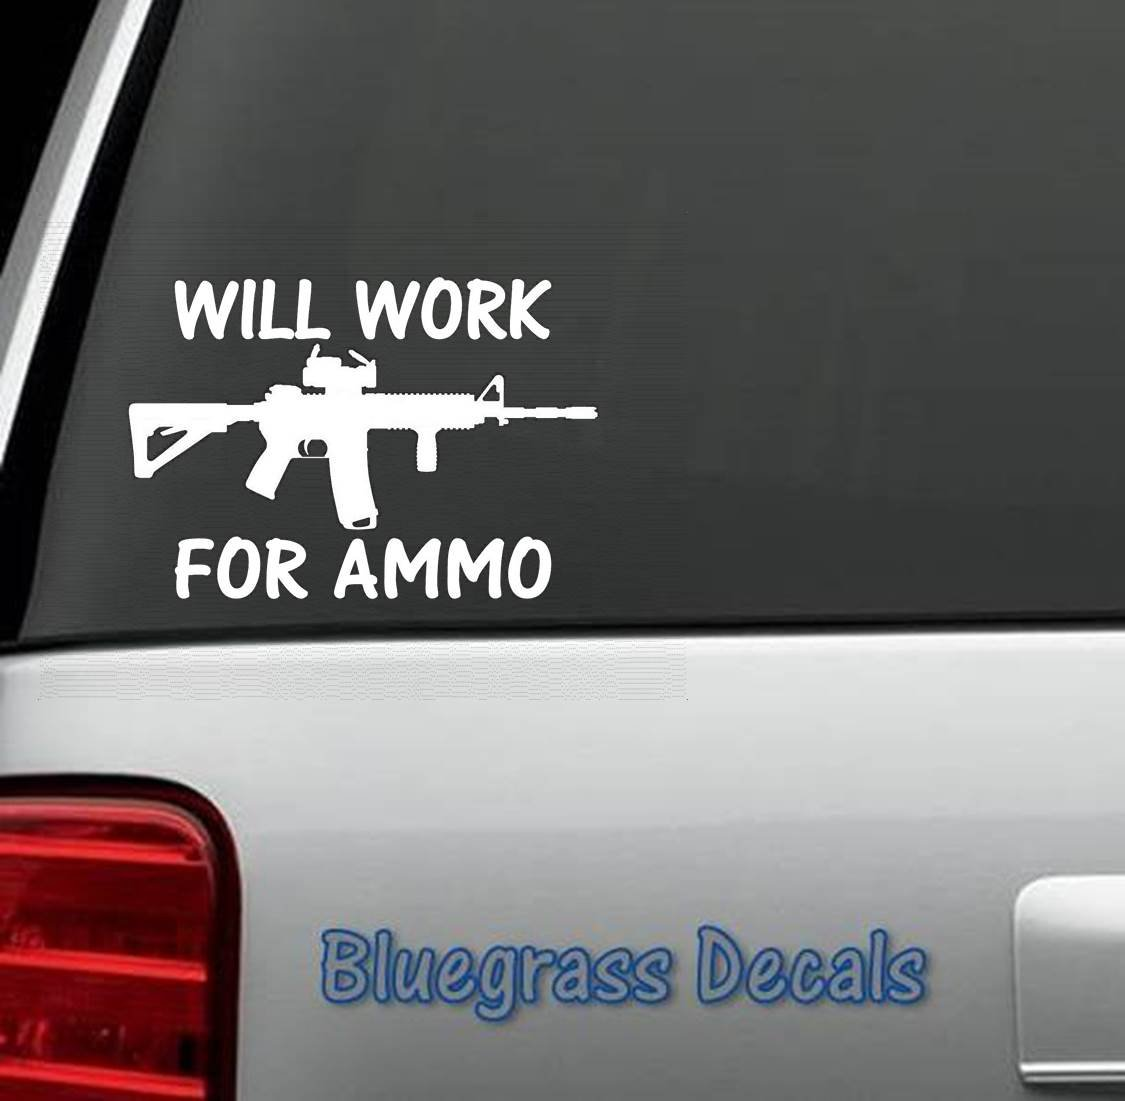 Amazon com a1063 will work for ammo decal sticker for car truck suv boat trailer hunting reloading equipment automotive